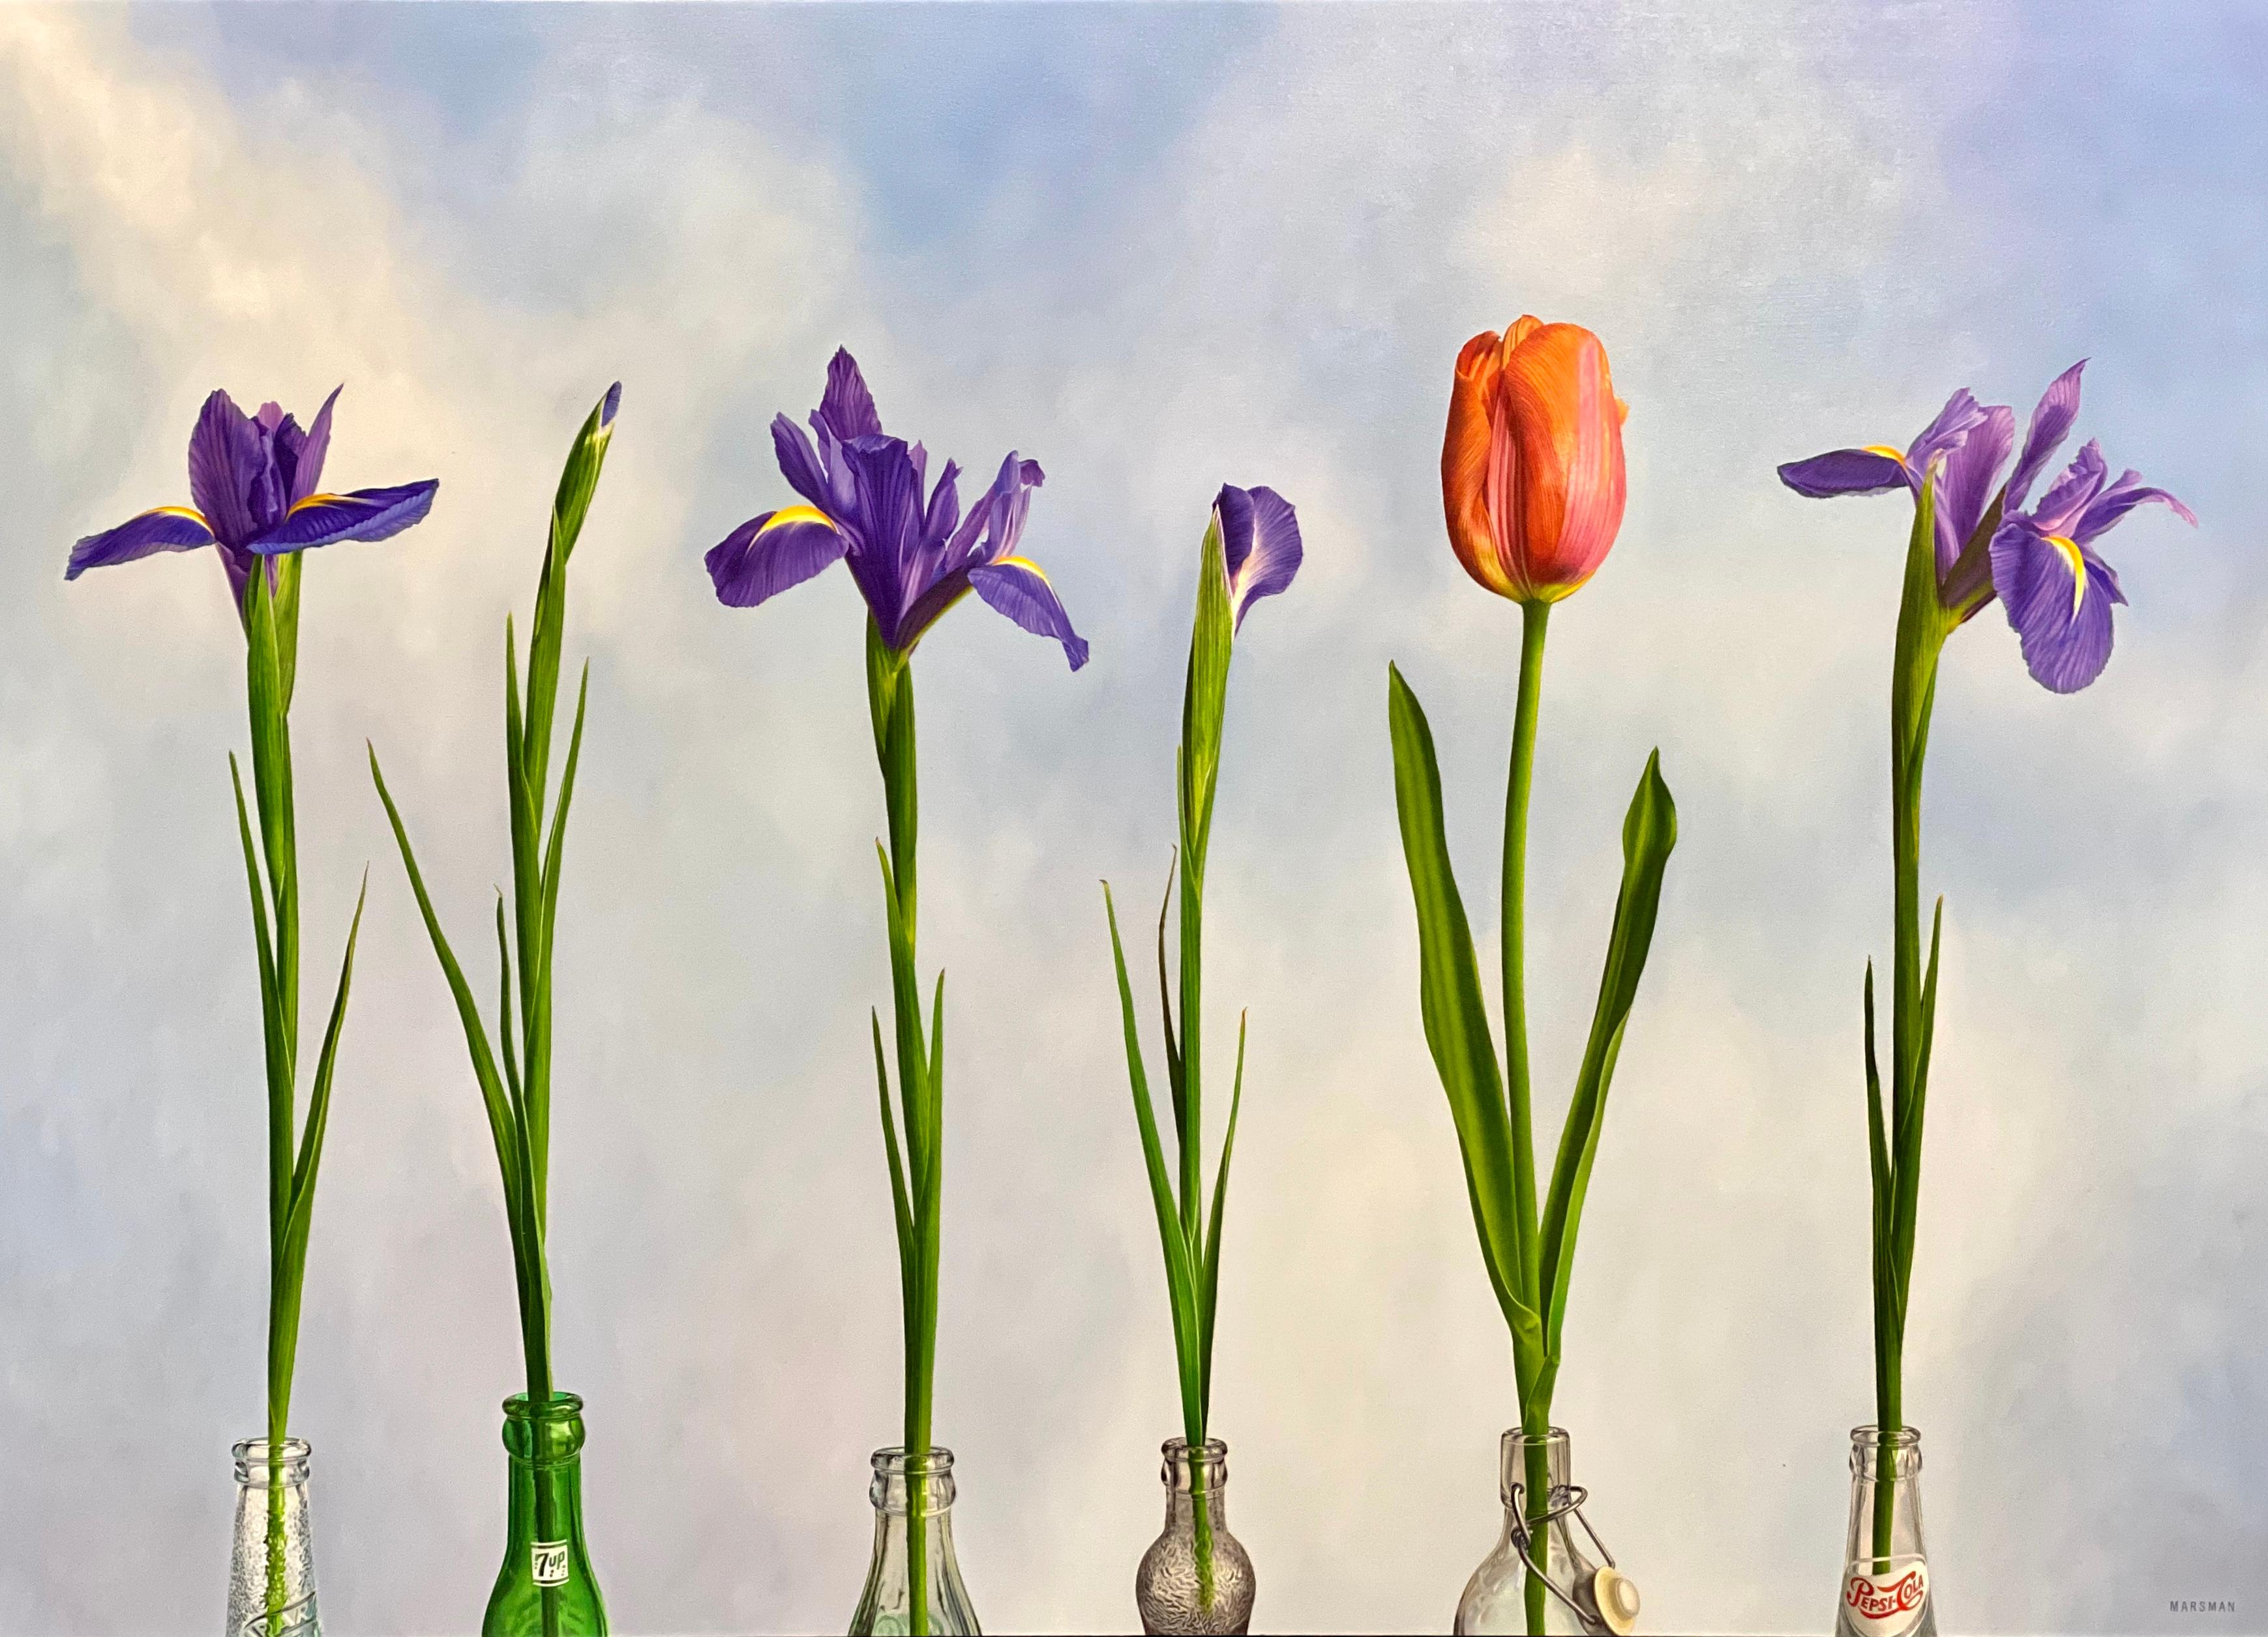 5 Irises and 1 Tulip- 21st Century Oilpainting of flowers in bright colors